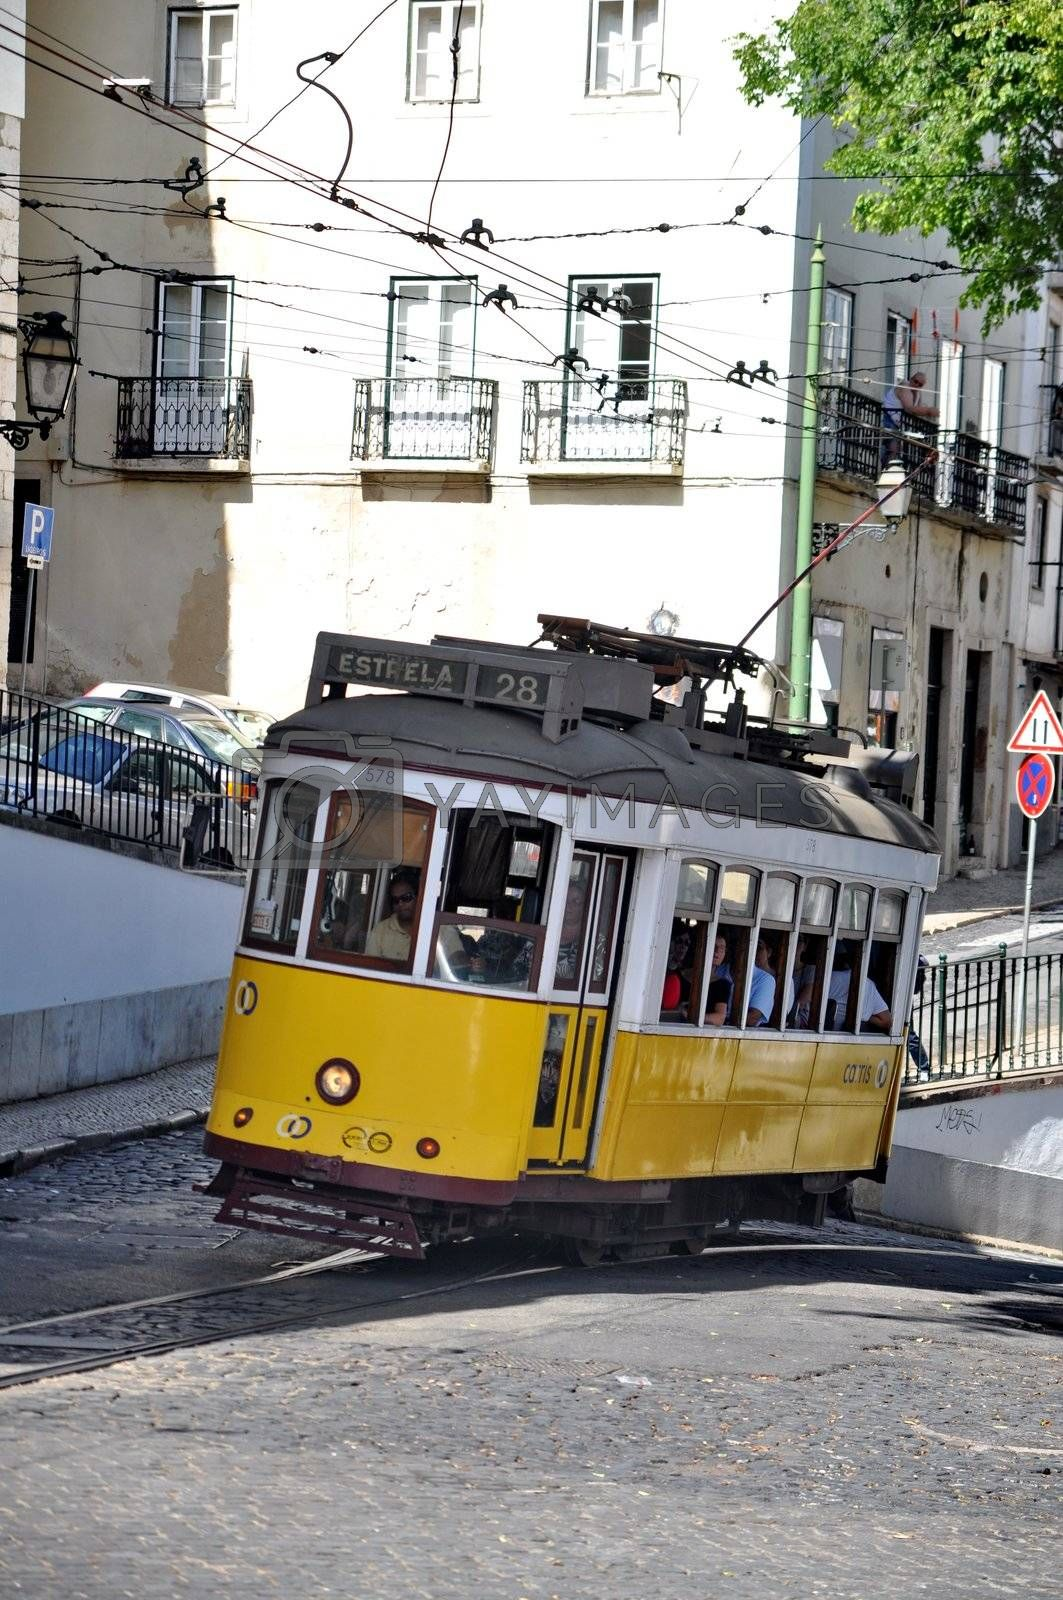 The famous line 28 tram in Lisbon, Portugal by anderm